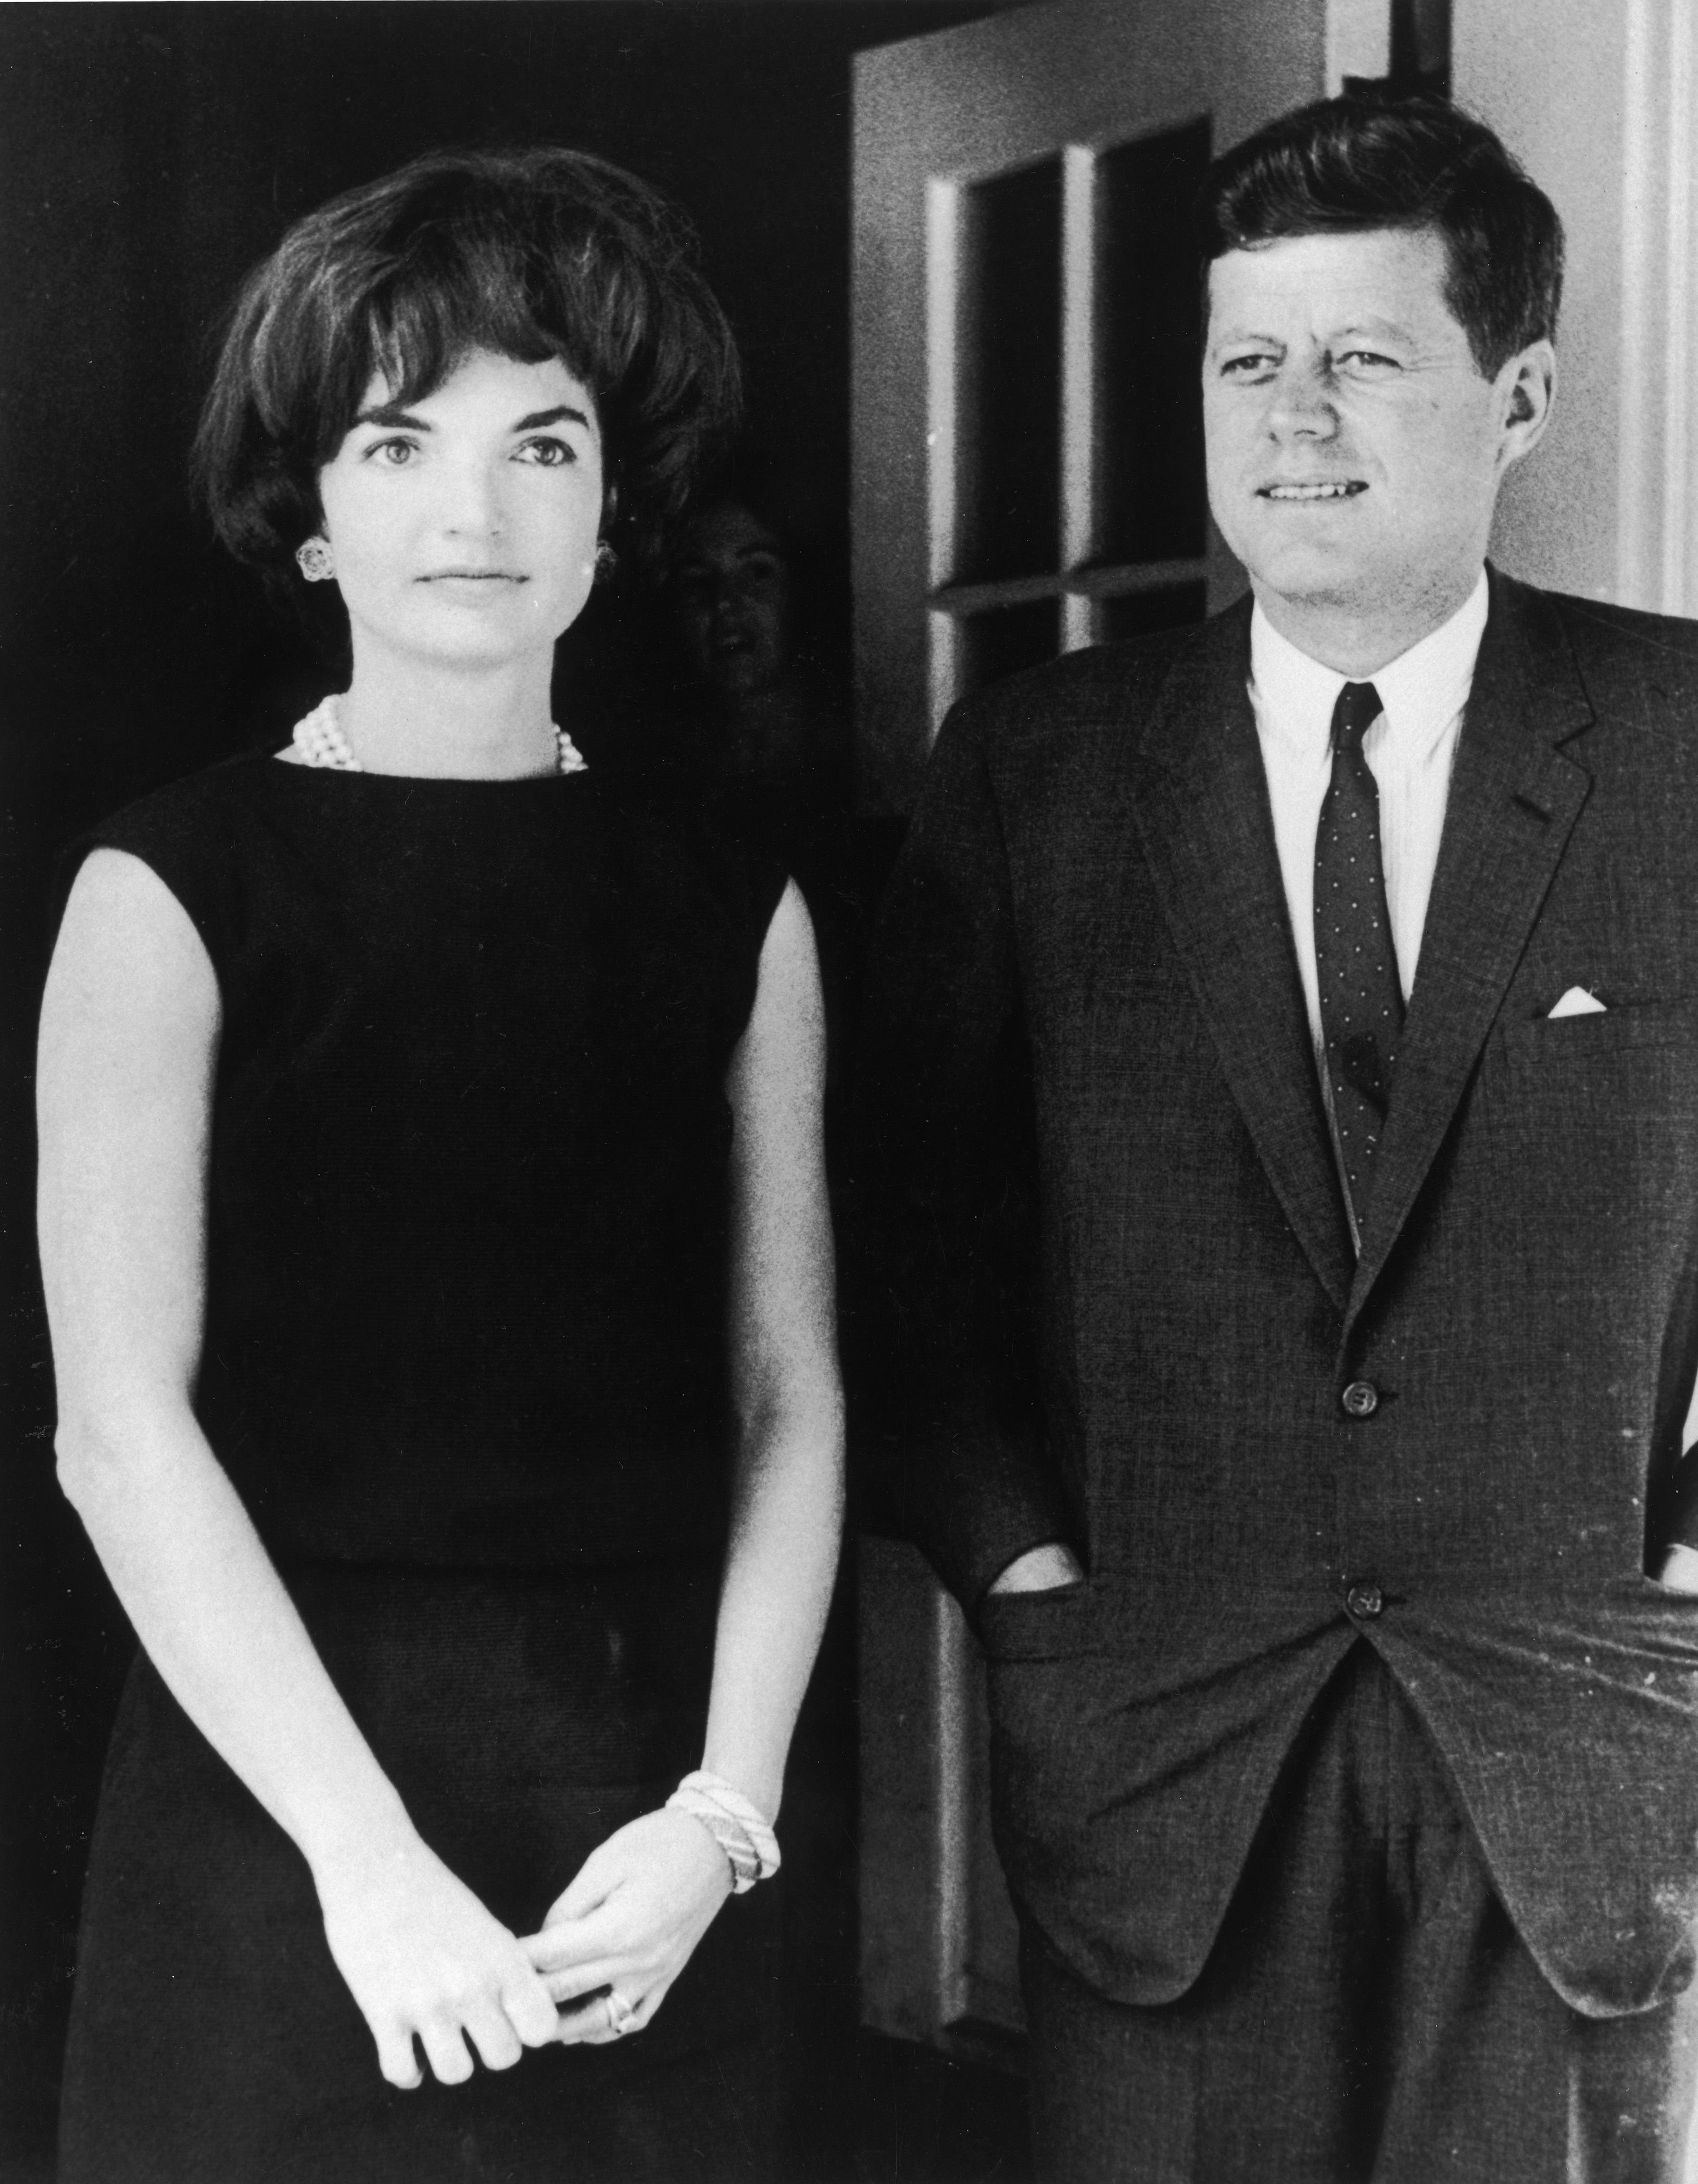 Jacqueline Kennedy stands with her husband, President John F. Kennedy in the door of the White House on January 01, 1960 | Photo: Getty Images